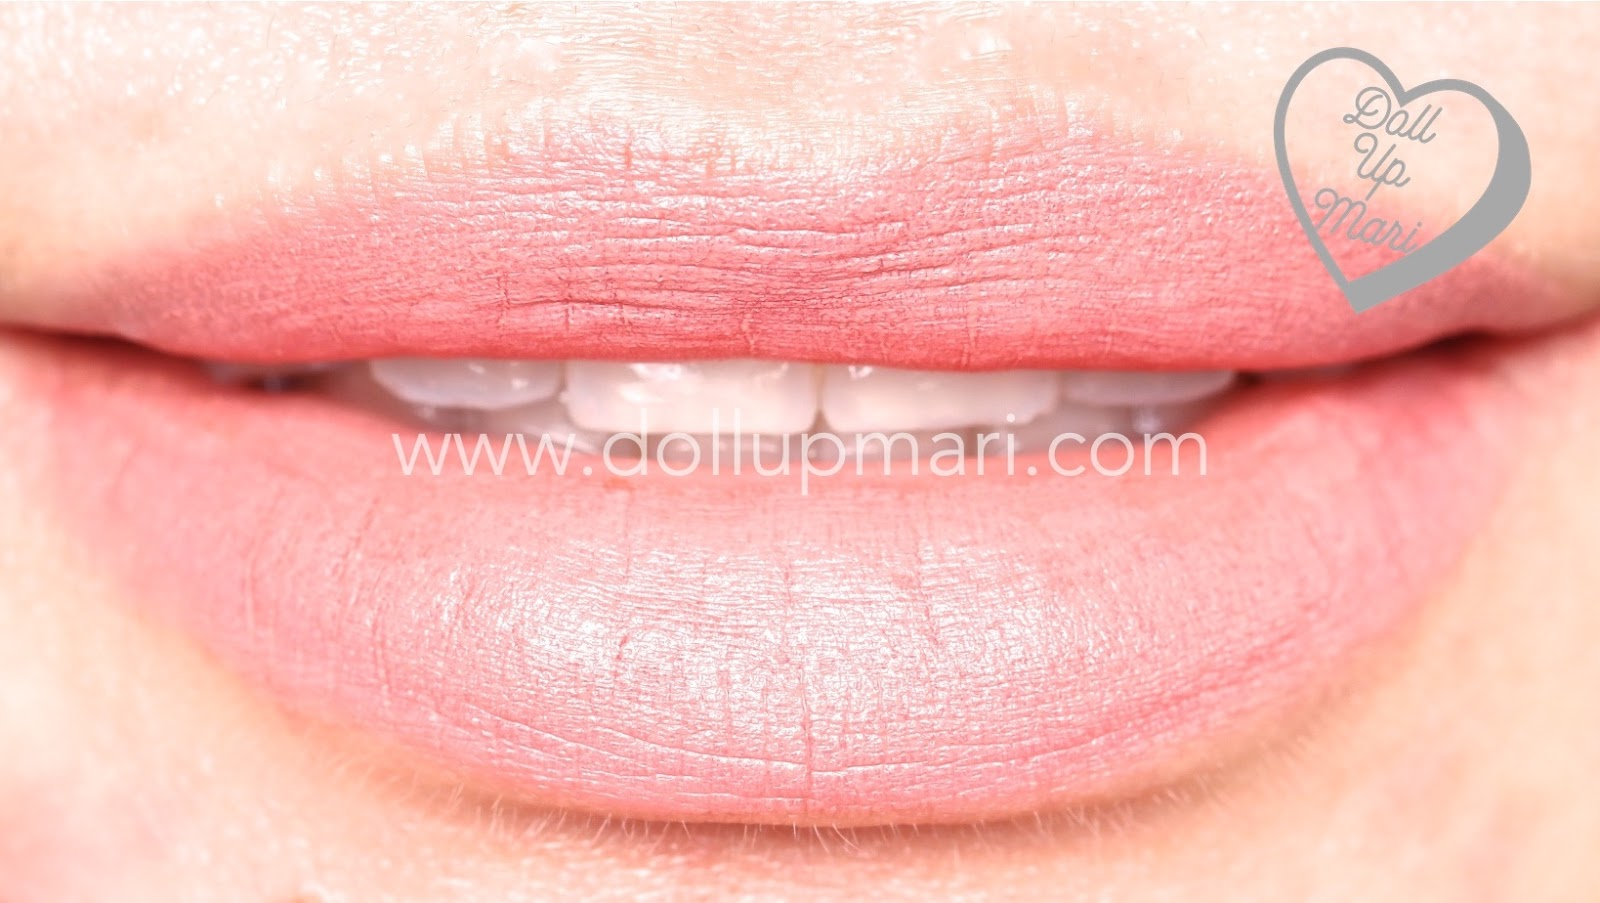 lip swatch of Rouged Perfection shade of AVON Perfectly Matte Lipstick